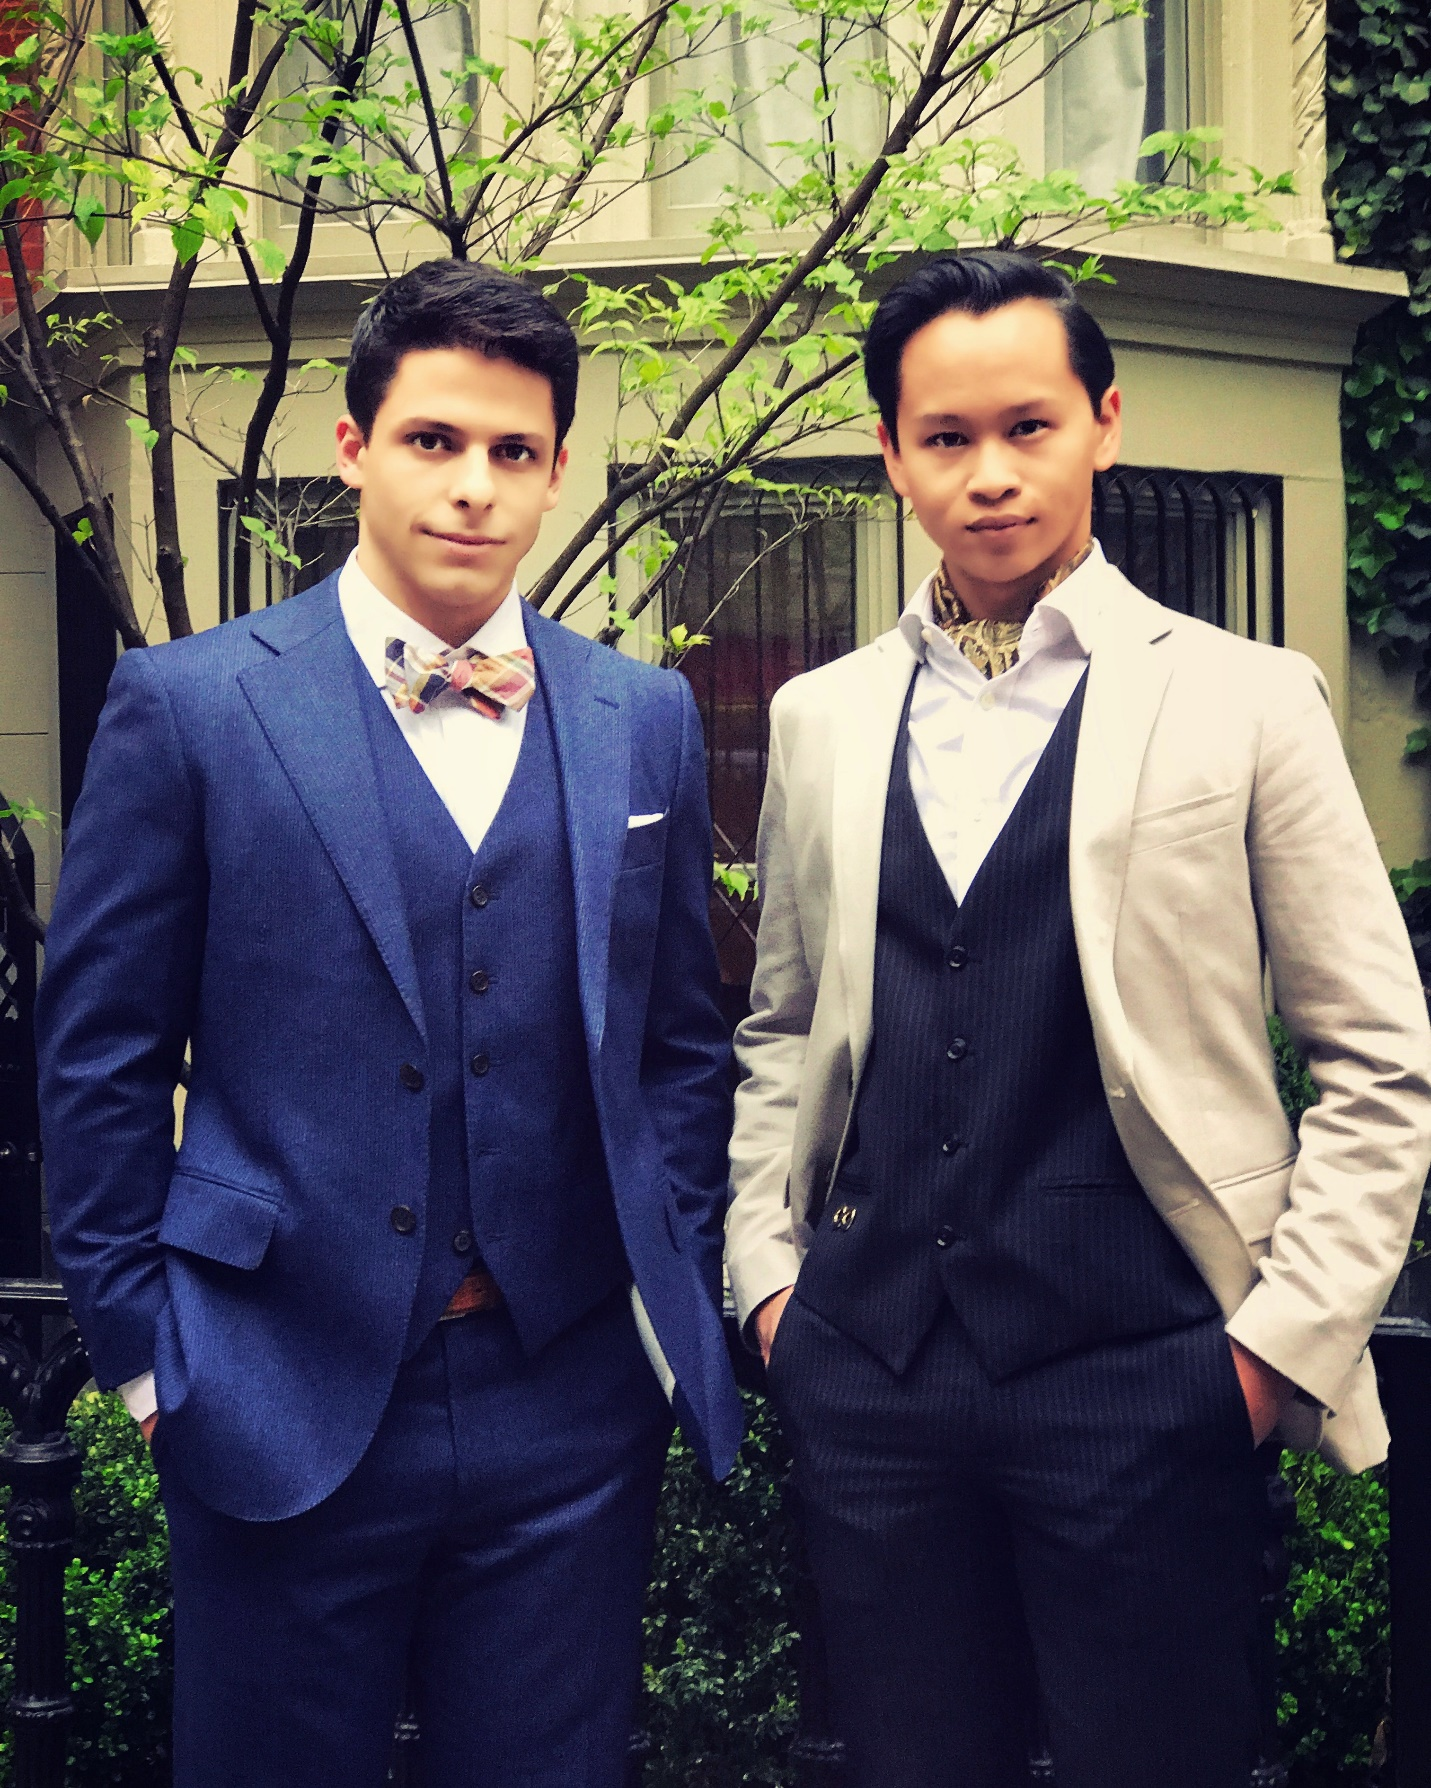 Giovanni and Alex, initiates-in-waiting.